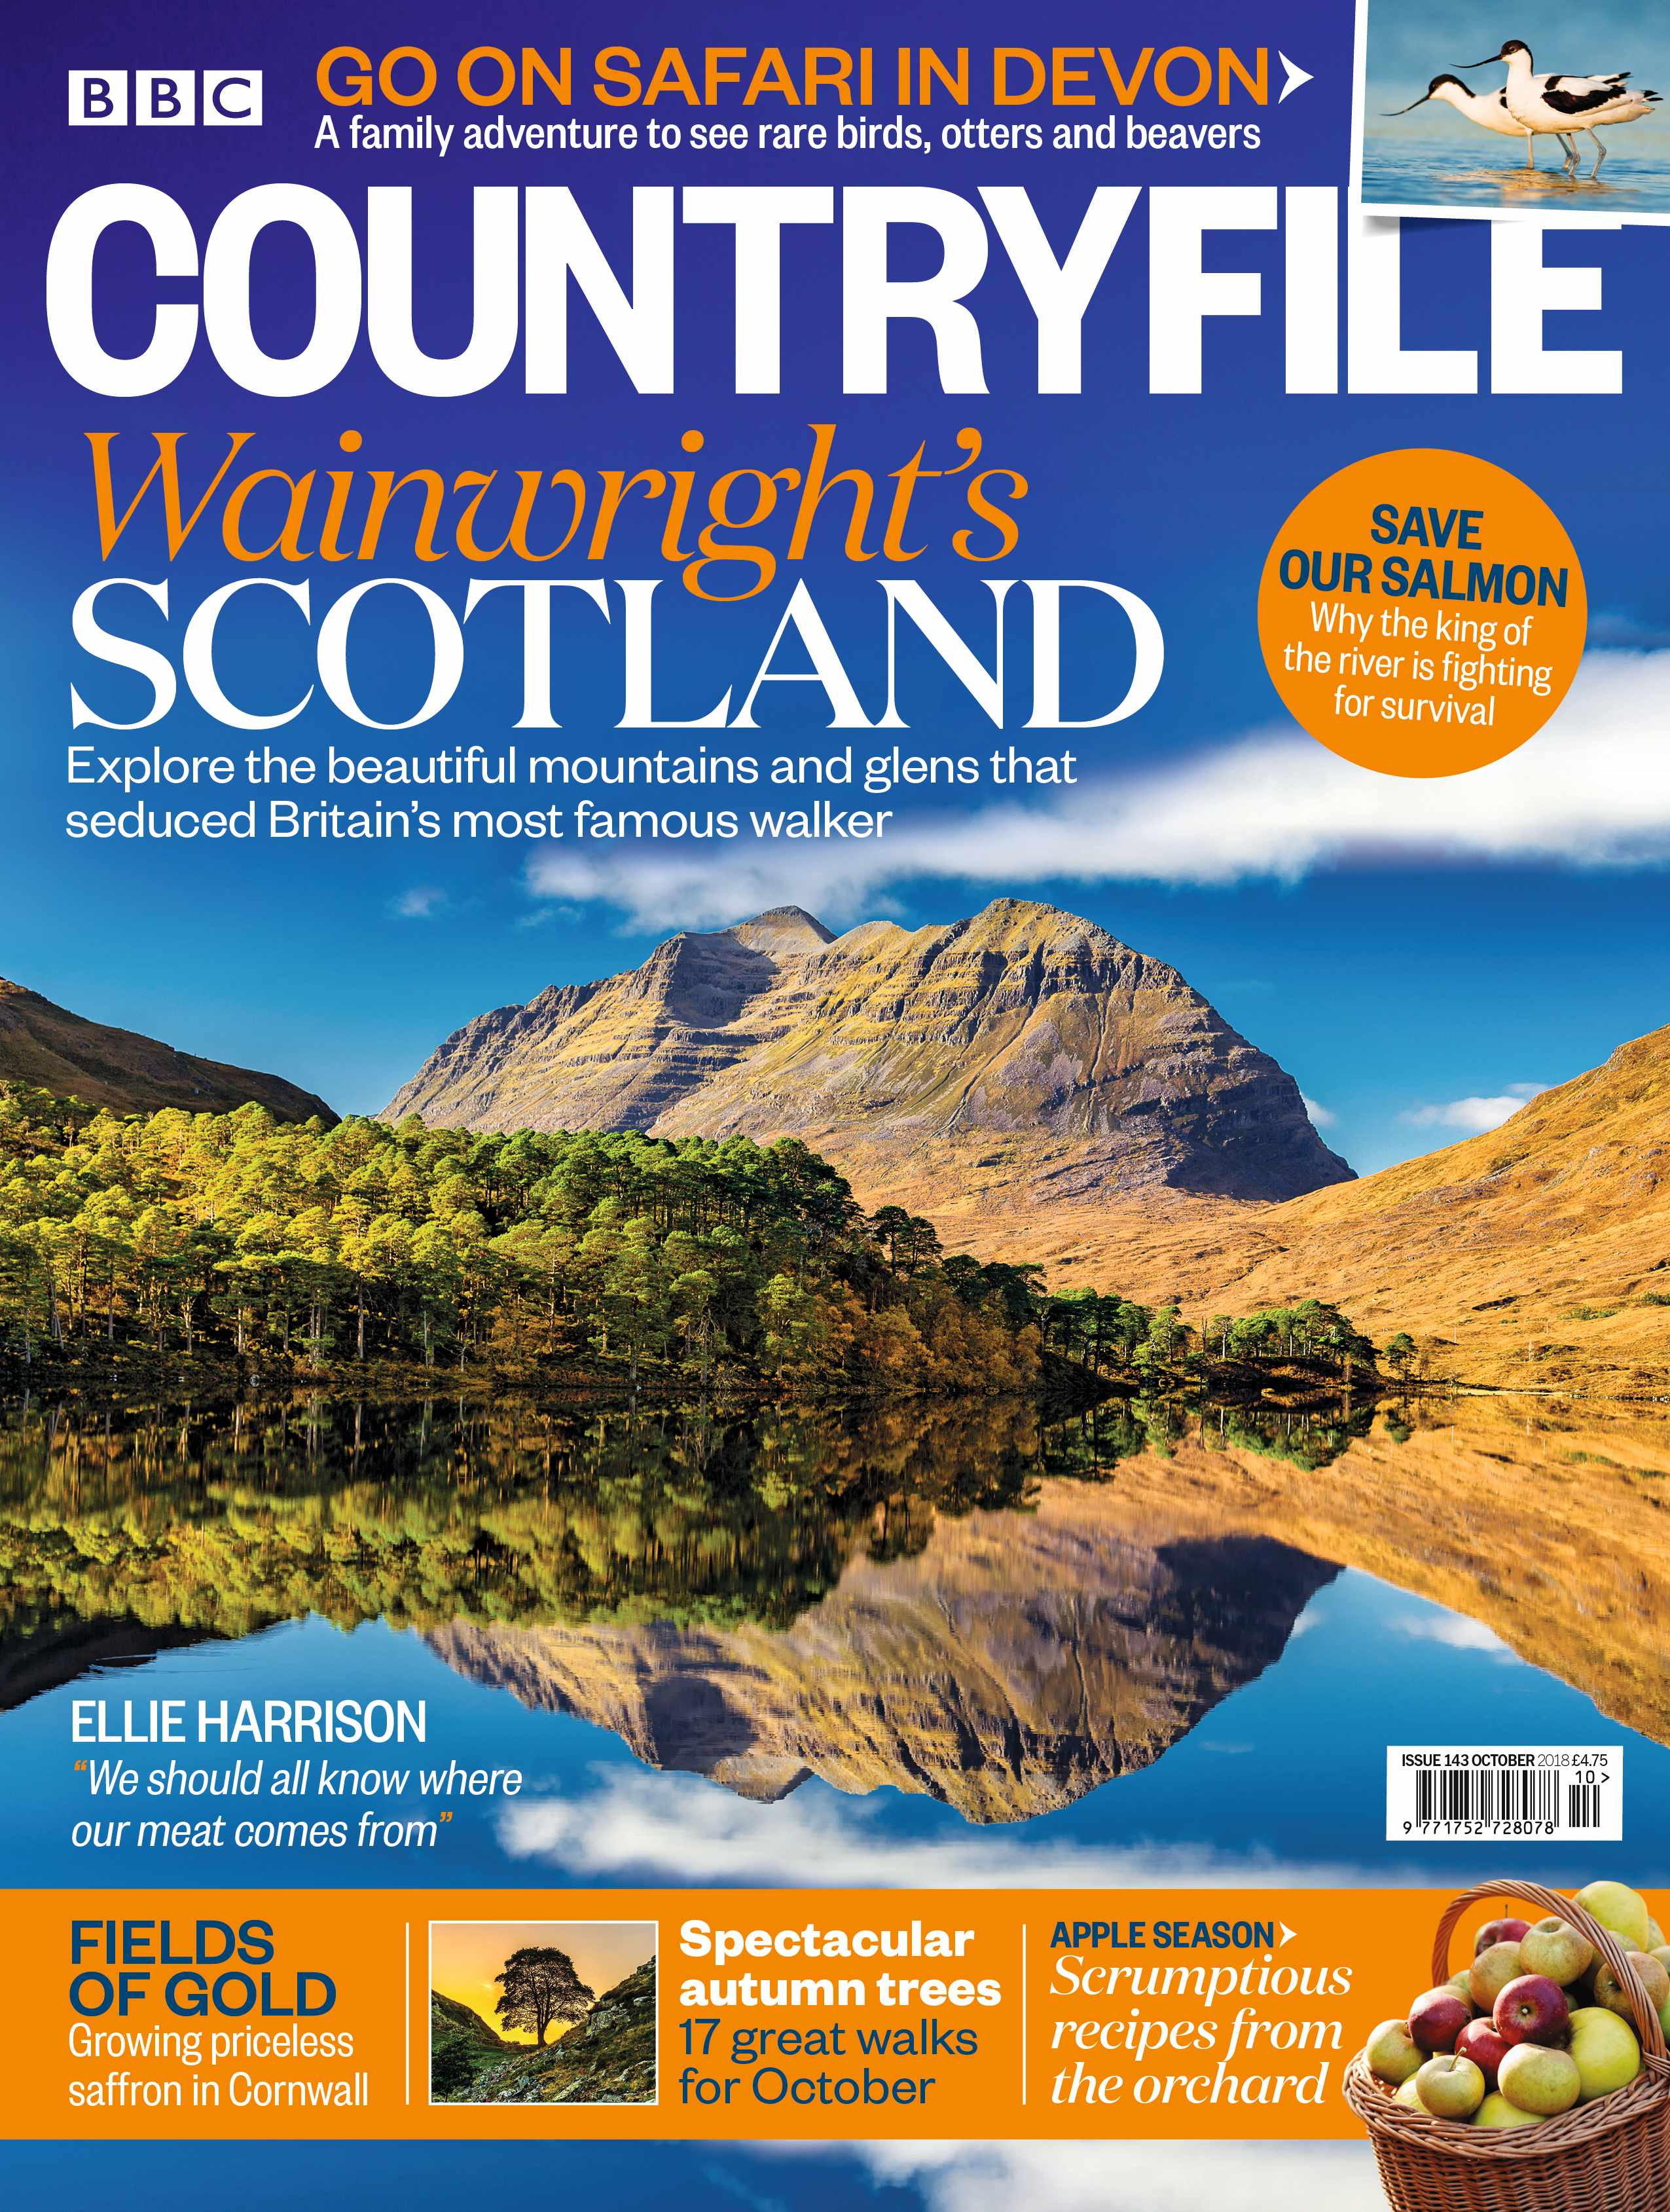 Countryfile Magazine issue 143